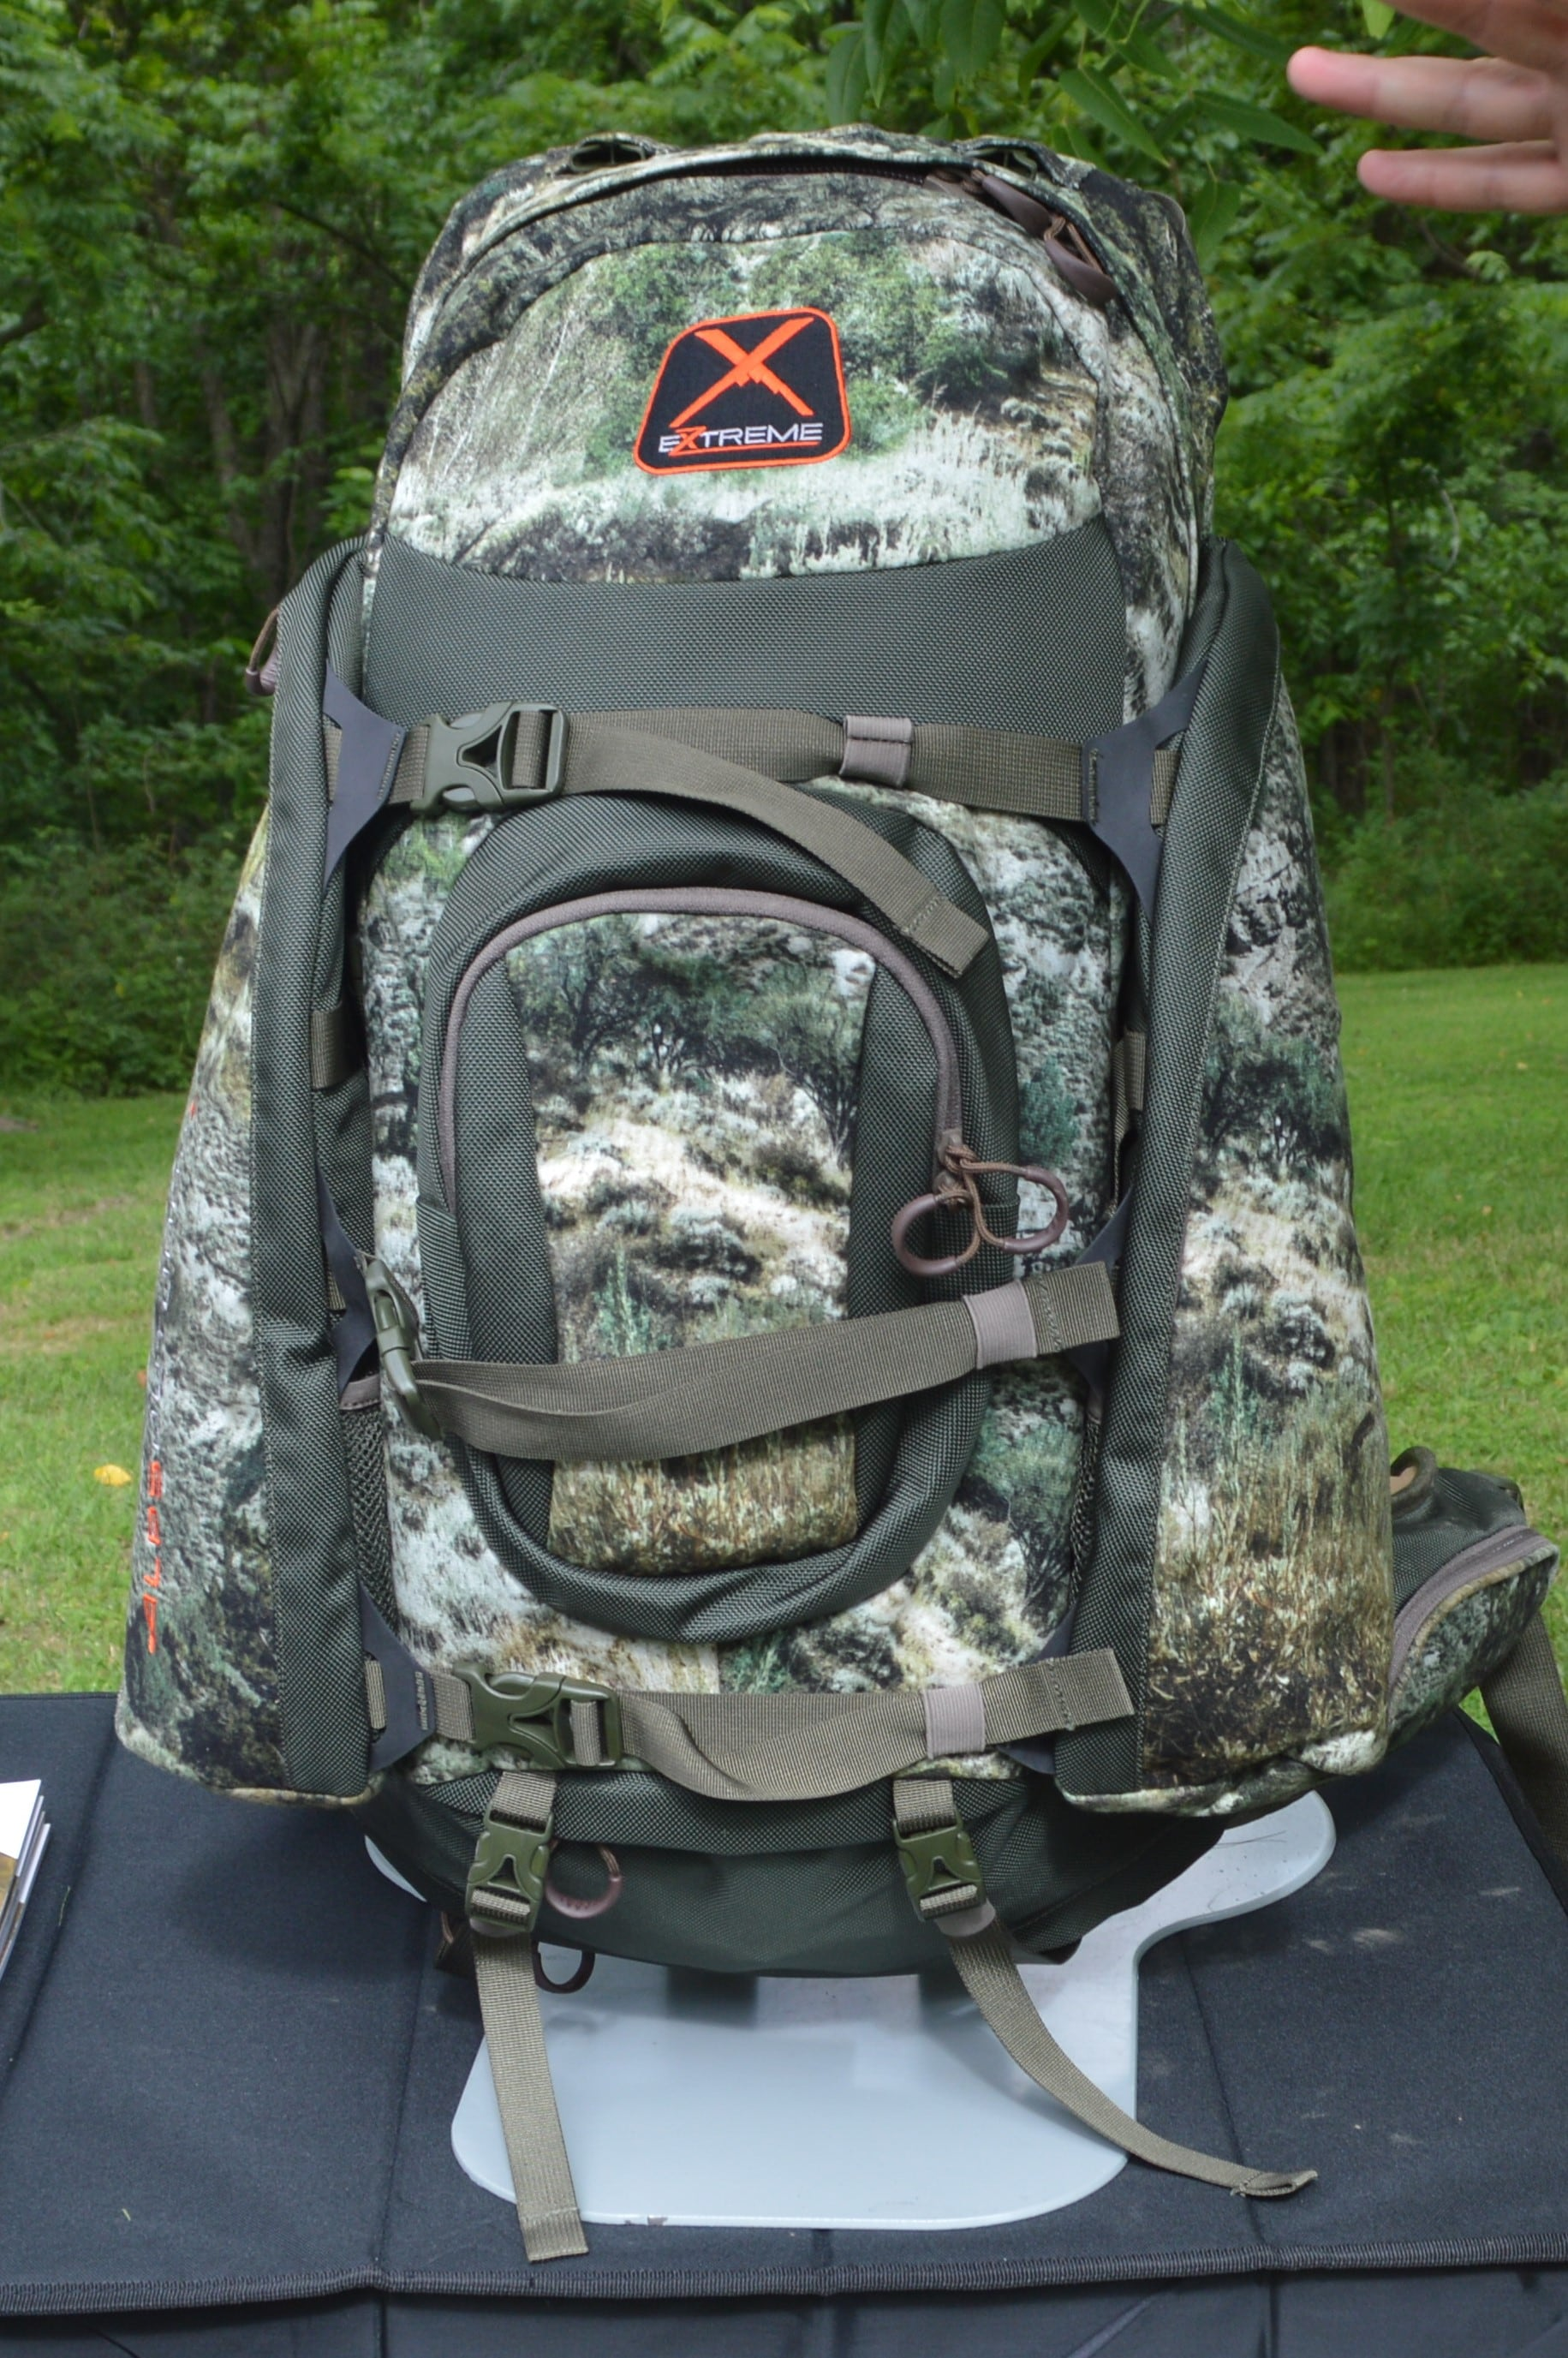 One of the most popular of Alps packs is this Traverse X. Not only is it a capable backcountry rig with molded foam suspension, there's also a bow/gun dropdown pocket, shooting stick/tripod holder, hydration pocket, and a rain cover, but the pack doubles as a meat hauler. (Photo: Kristin Alberts)